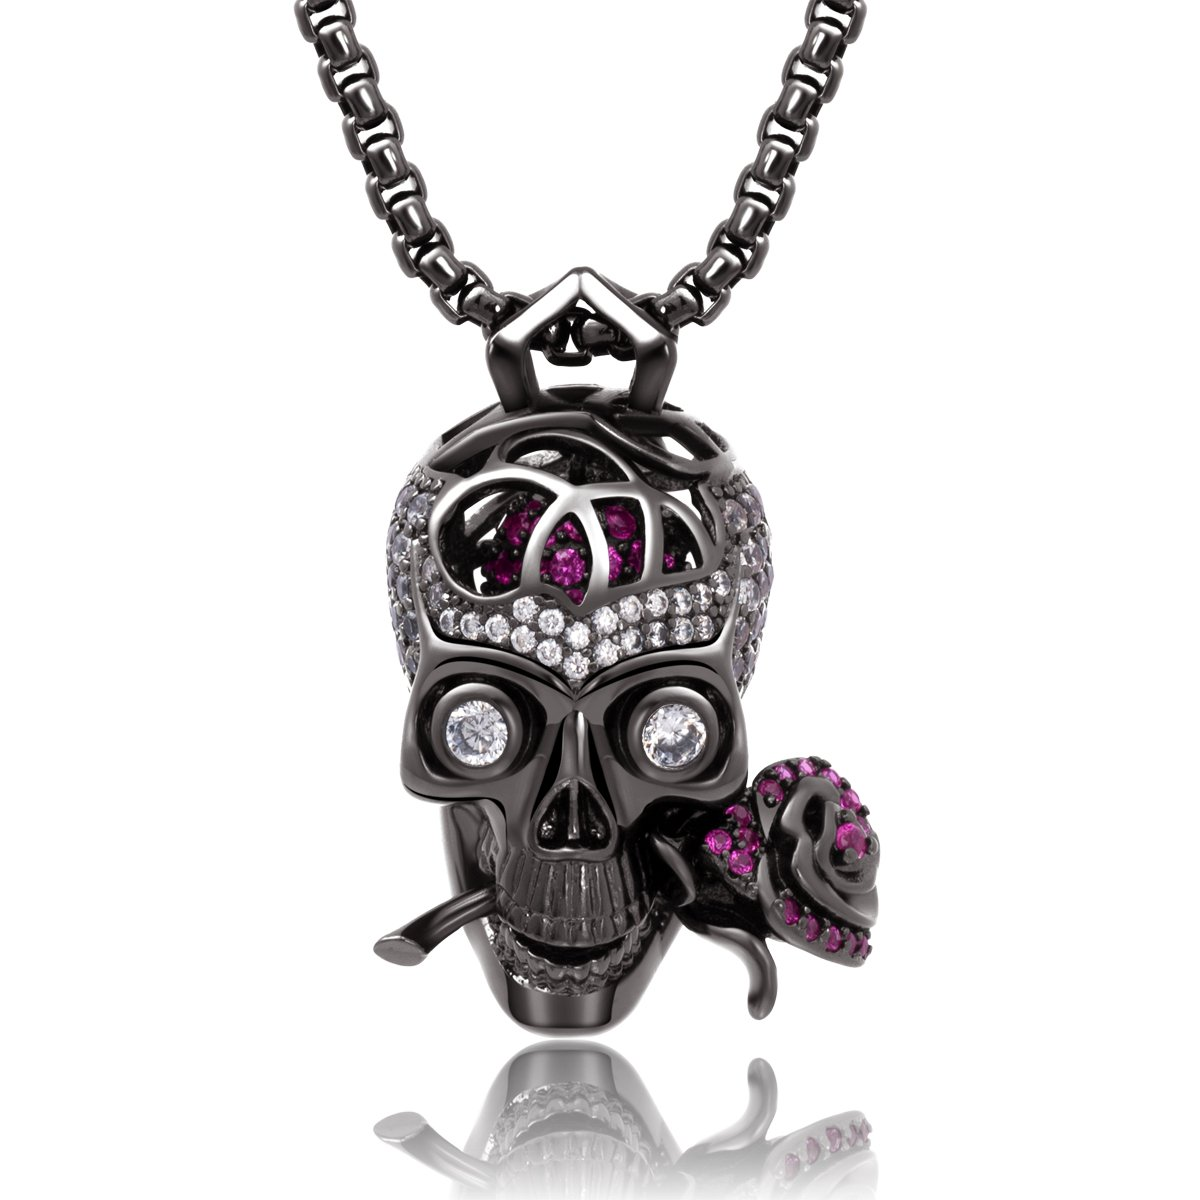 Karseer Gothic Filigree Sugar Skull and Everlasting Rose Charm Pendant Necklace with Crystal Brain Hidden Floating Inside, 24'' Box Chain Matching Costume, Gun Black Jewelry Gift for Men and Women